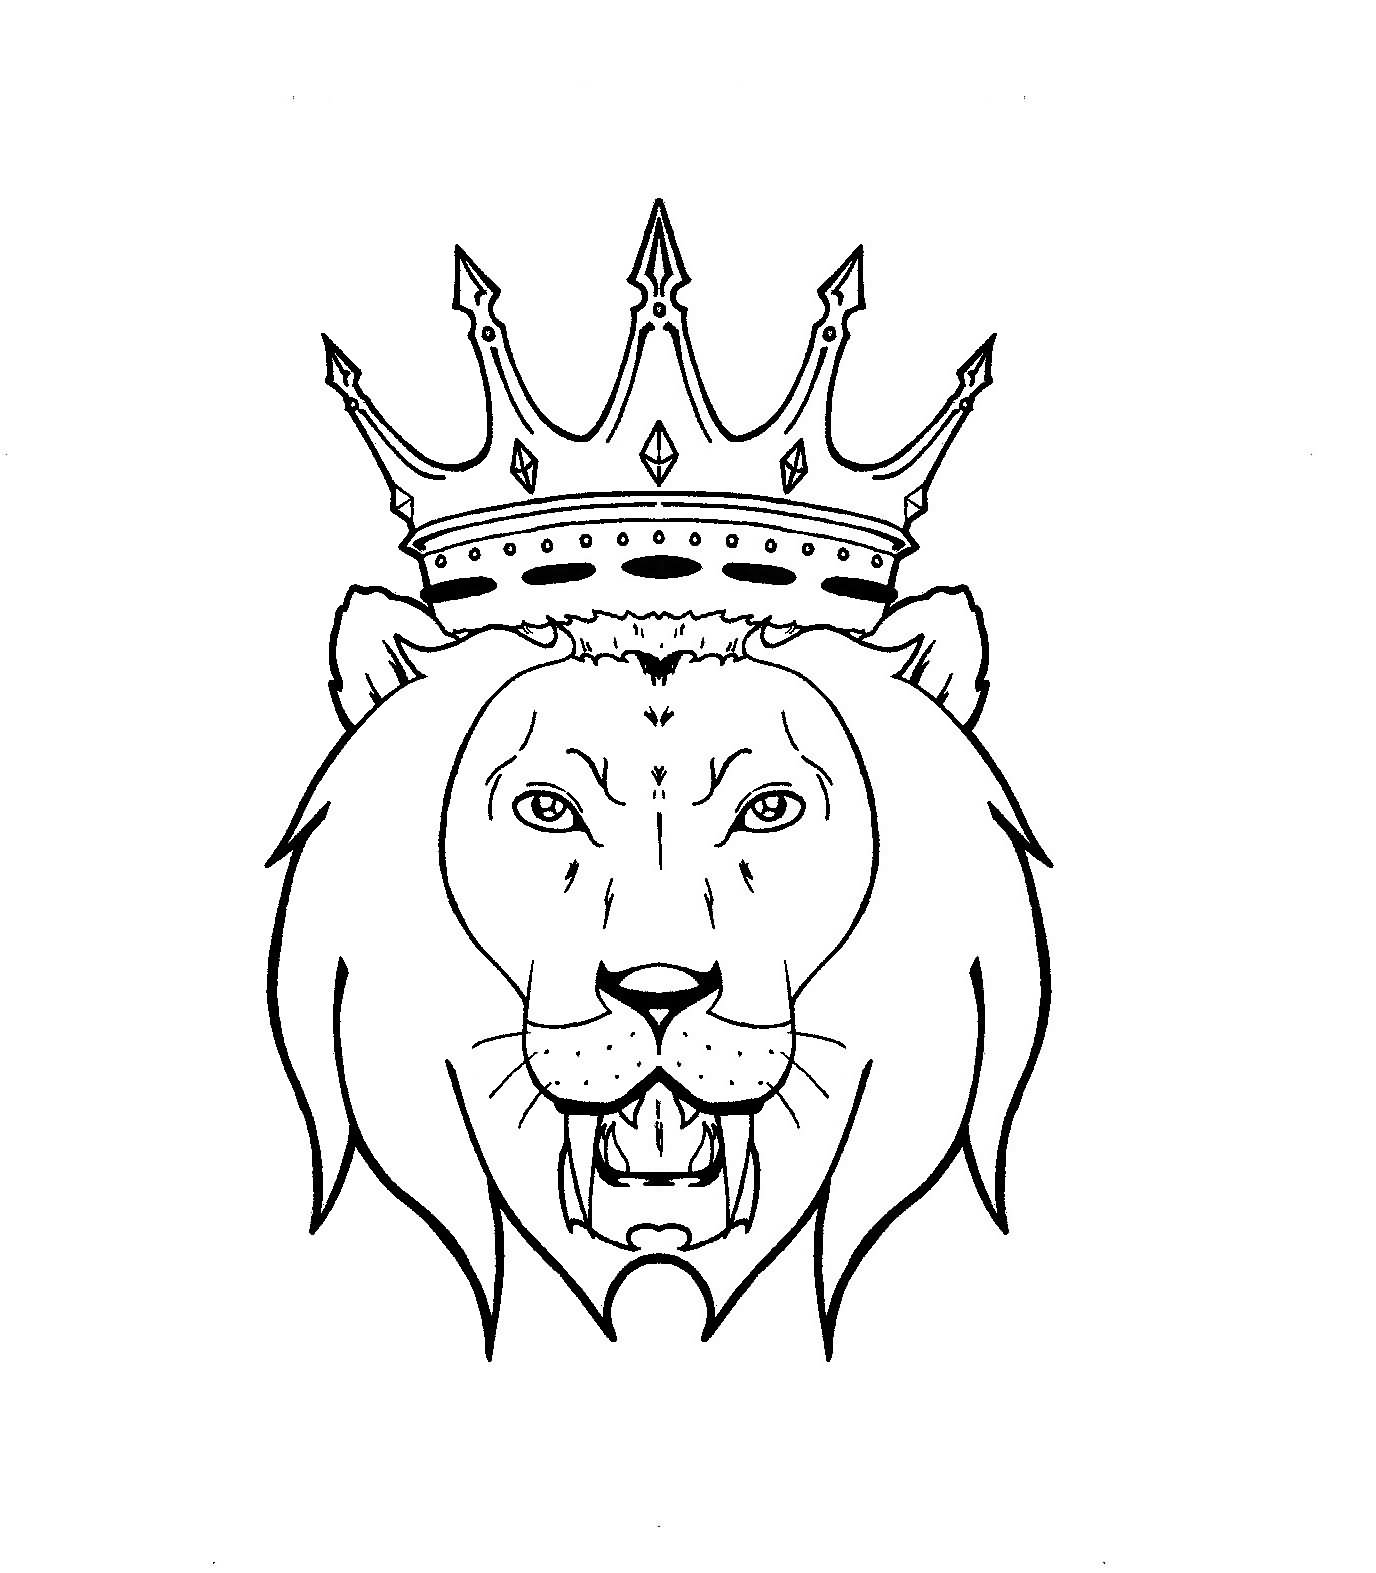 Lion Crown Tattoo Drawings